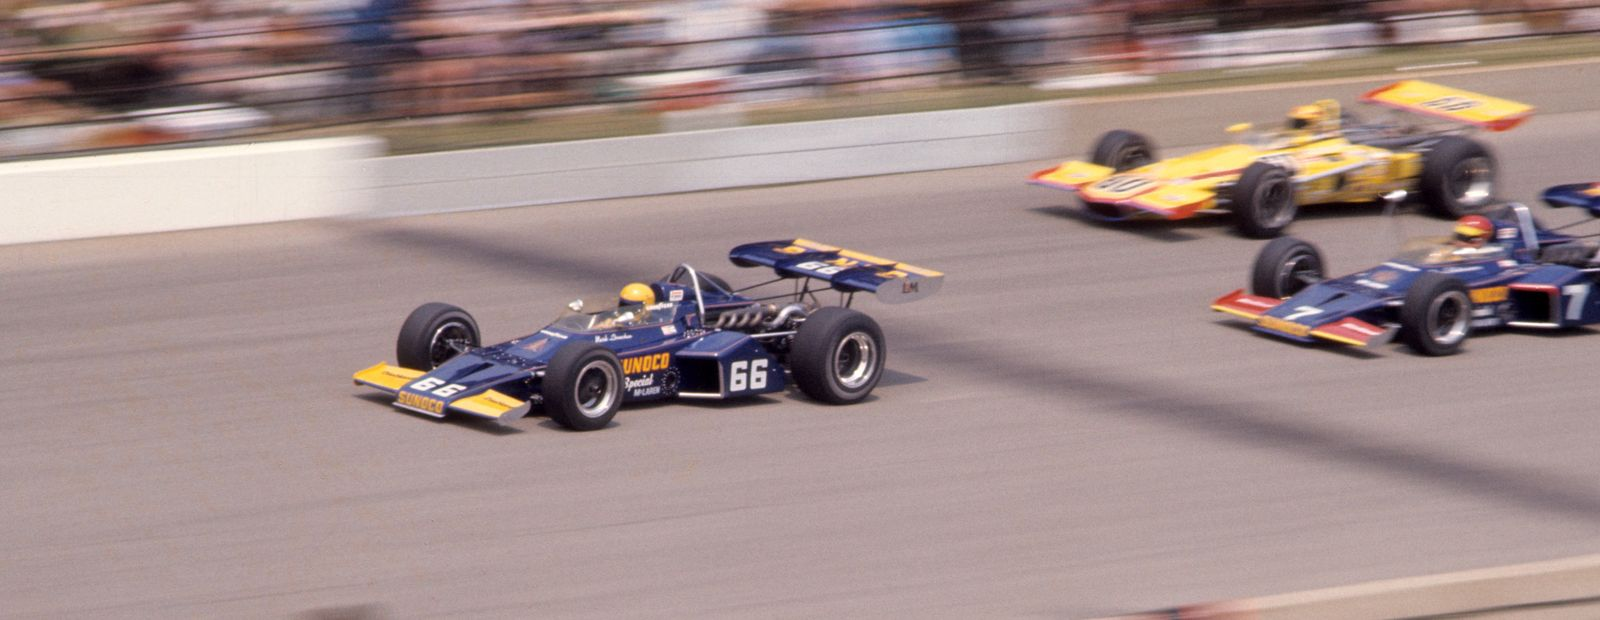 McLaren M16: A three-time Indy 500 winner